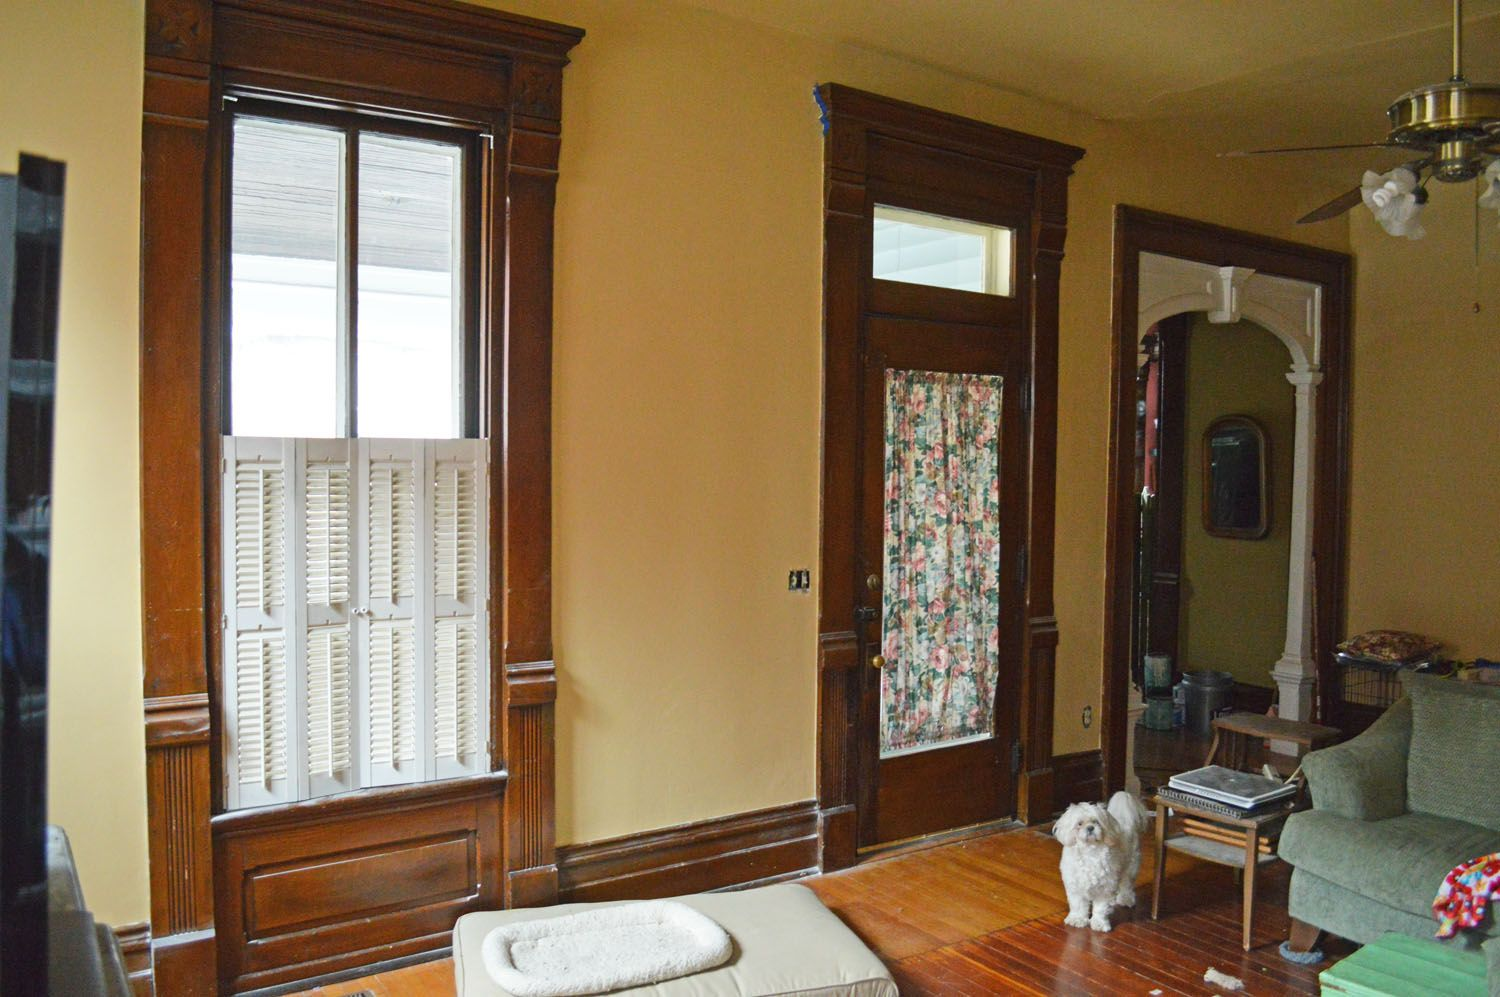 Rooms Painted In Gold Tones Living Room Painted Sherwin Williams Restrained Gold Ideas For